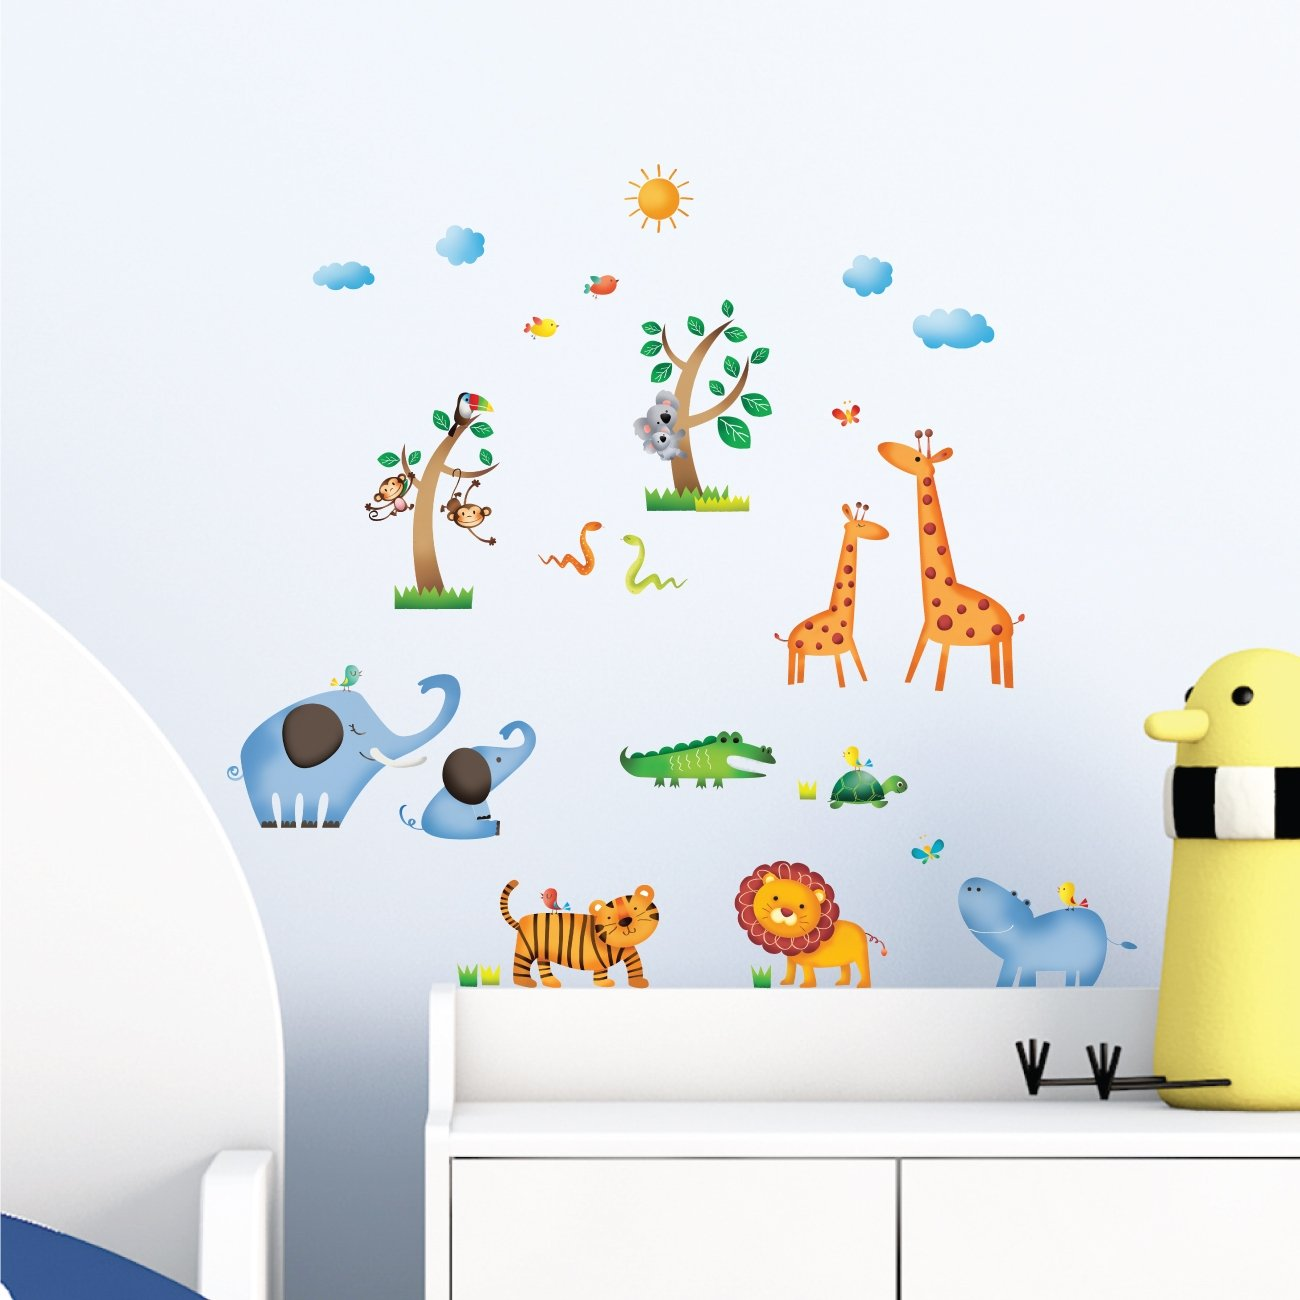 Decowall DW-1206 Wild Jungle Animals Kids Wall Stickers Wall Decals Peel and Stick Removable Wall Stickers for Kids Nursery Bedroom Living Room